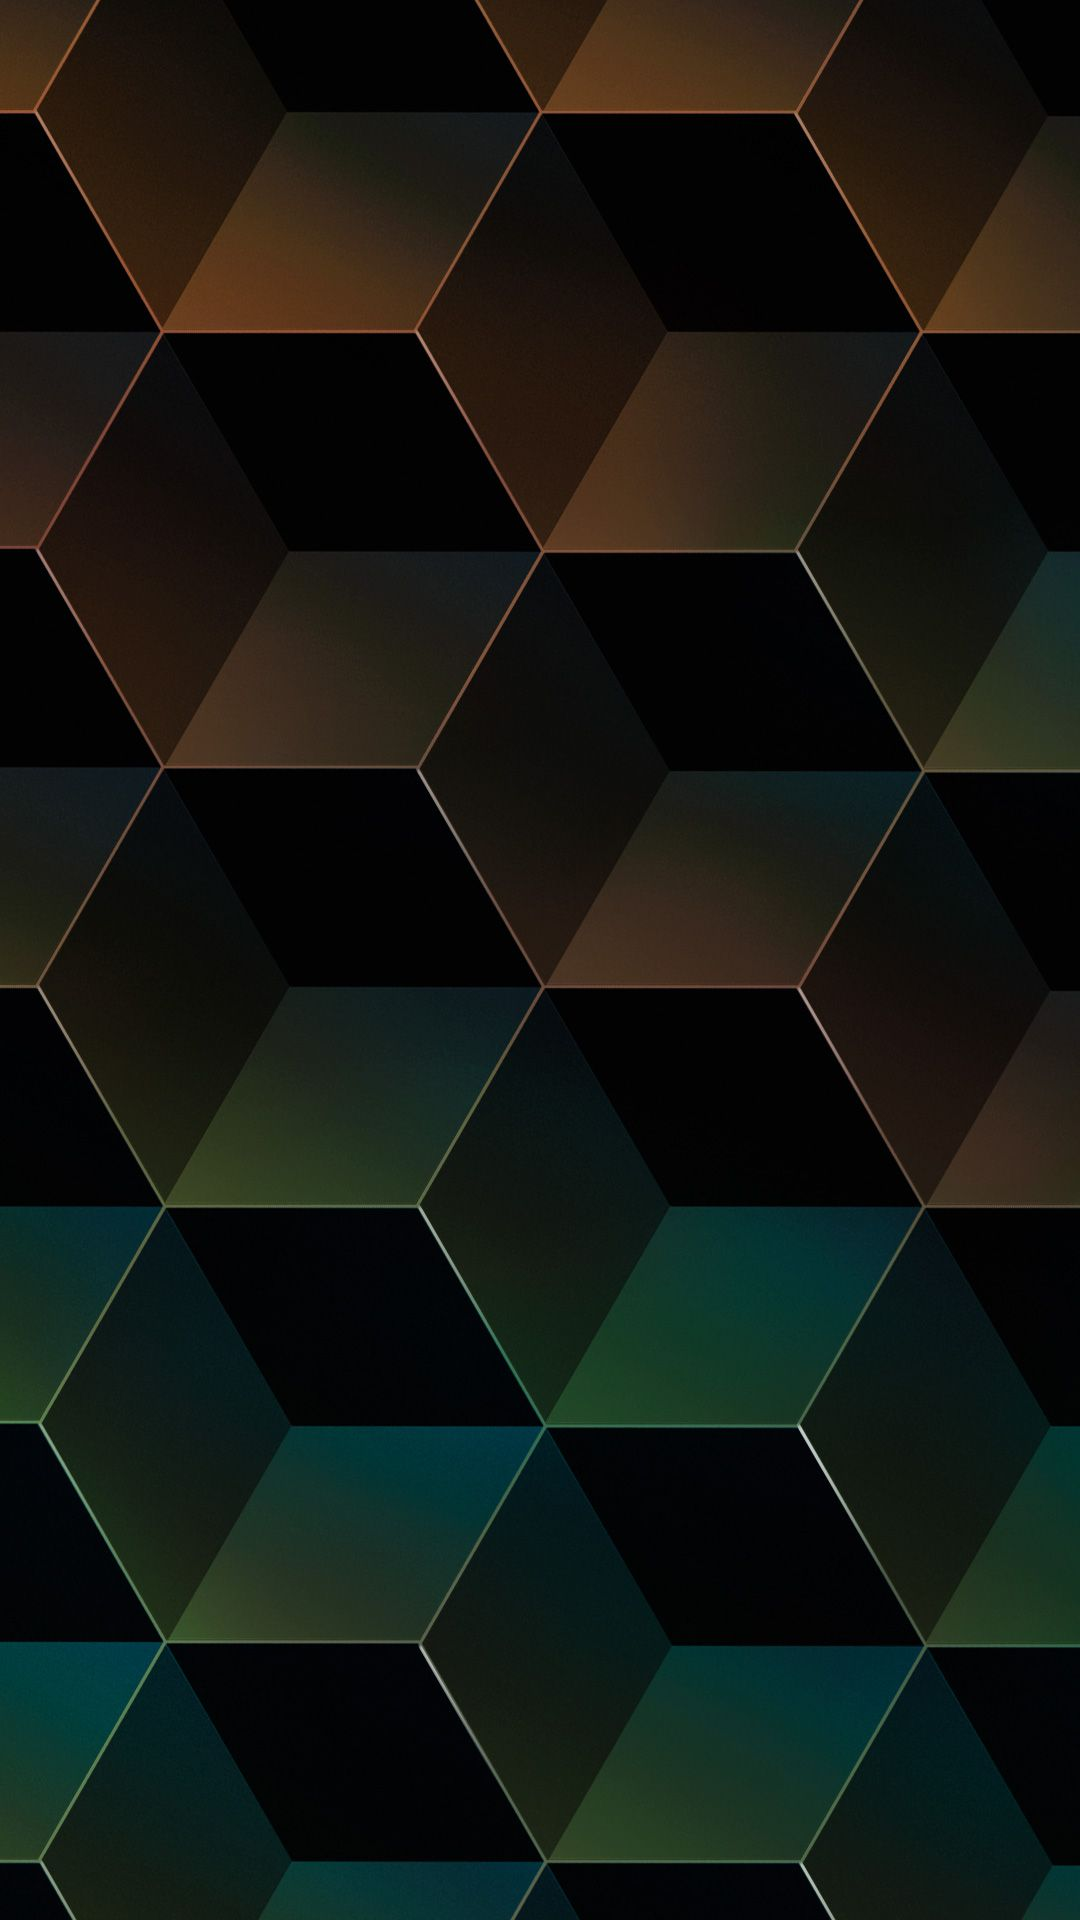 Wallpaper iphone geometric - Geometric Gradient Facets Apple Iphone 7 Plus Hd Wallpapers Available For Free Download